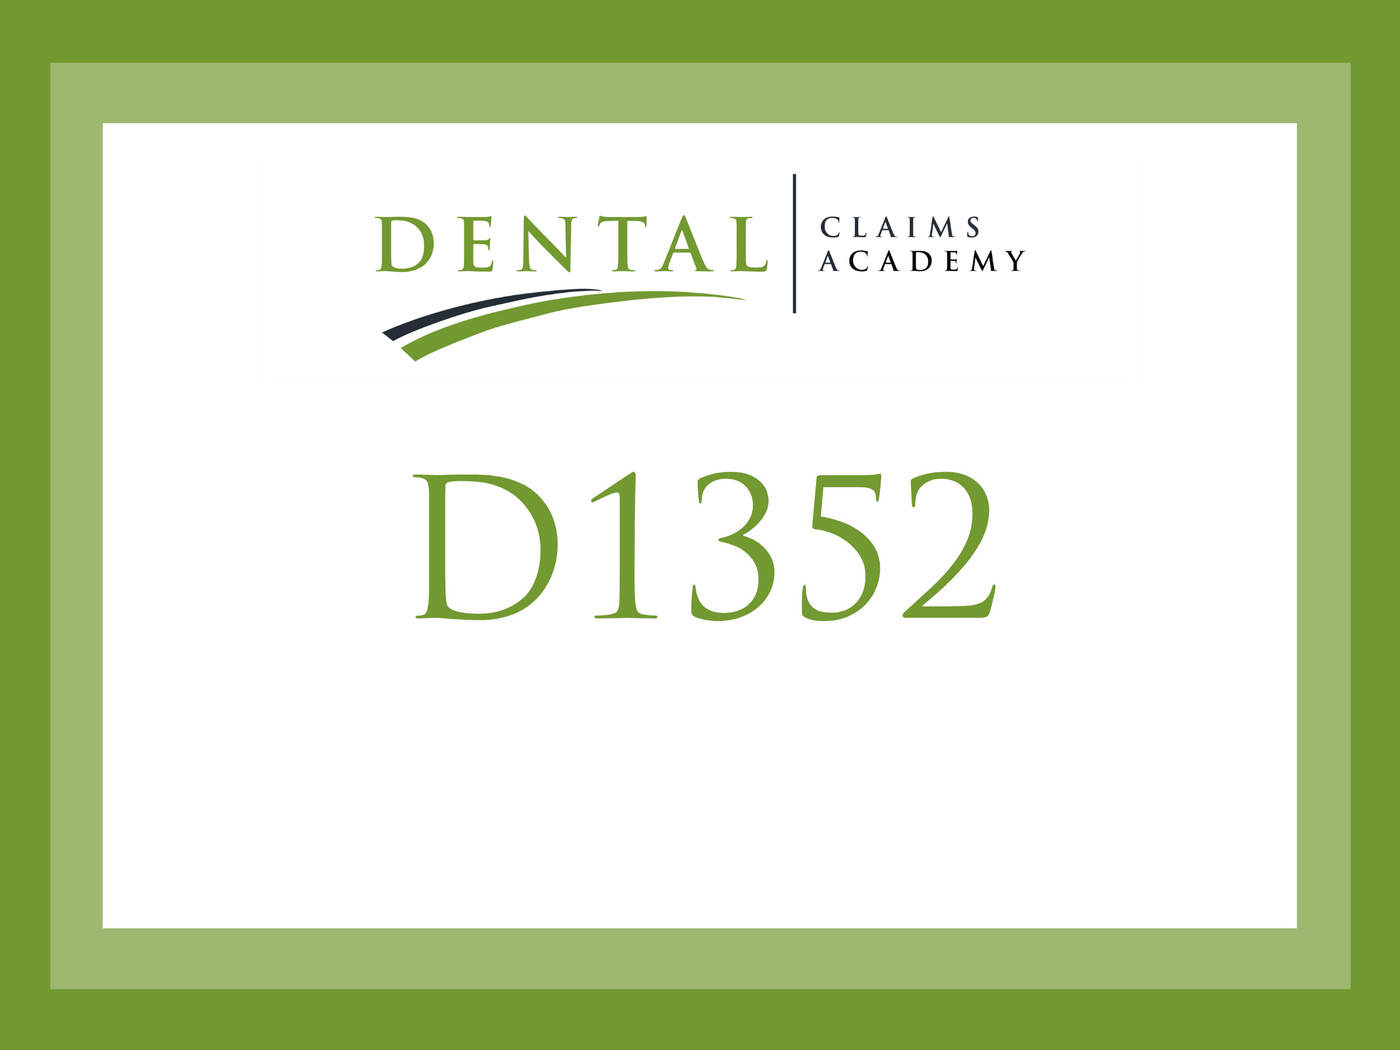 Examining CDT Code D1352: What is the difference between a Sealant vs Preventive Resin Restoration vs Filling?